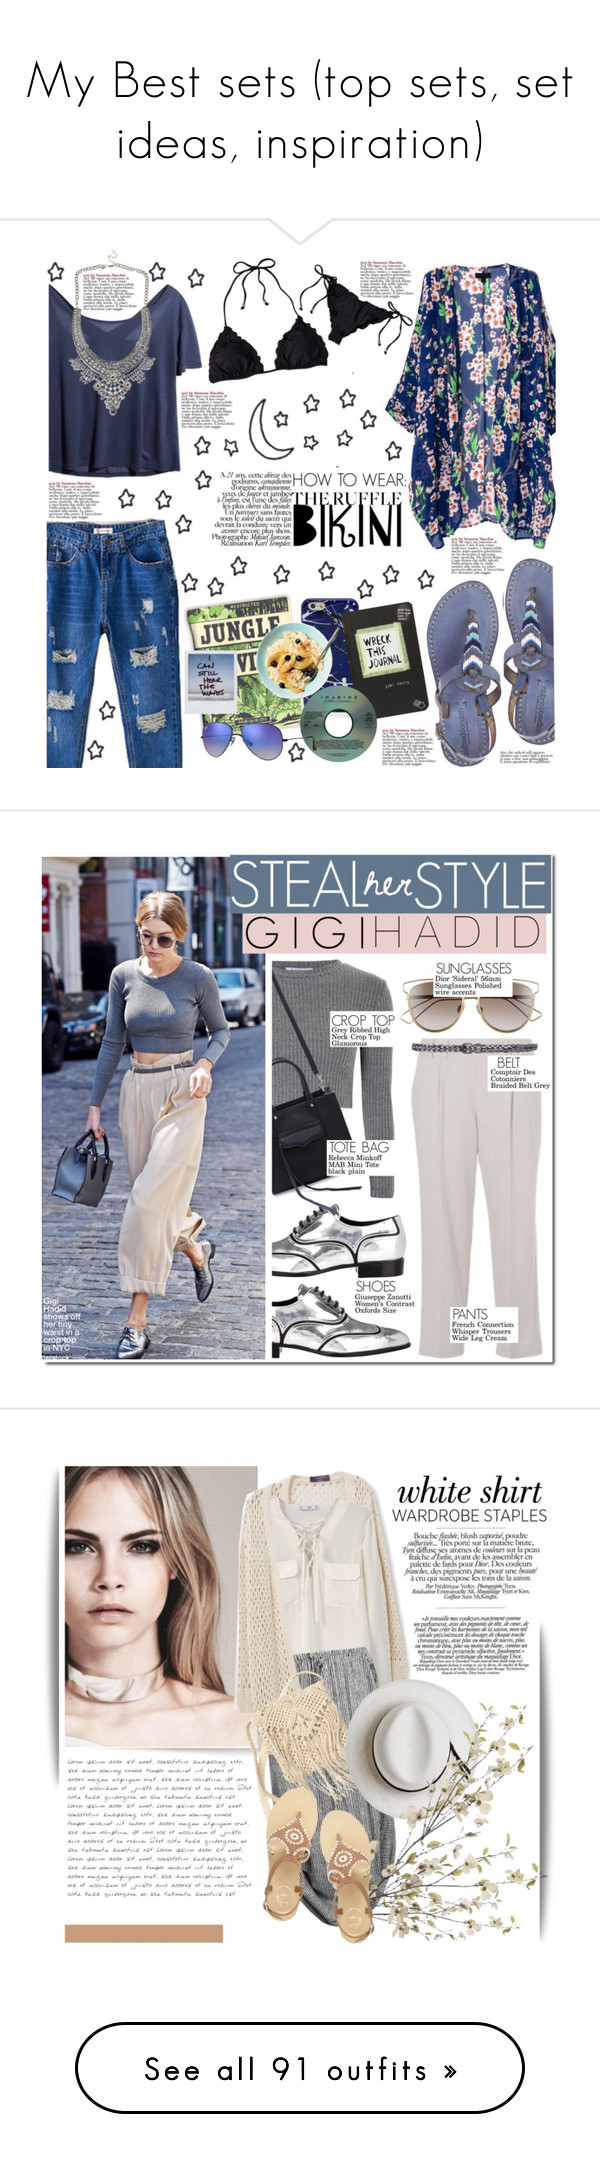 """""""My Best sets (top sets, set ideas, inspiration)"""" by hafsahshead ❤ liked on Polyvore featuring Laidback London, Marc Jacobs, Ray-Ban, Barneys New York, Giuseppe Zanotti, Glamorous, Rebecca Minkoff, French Connection, Comptoir Des Cotonniers and Christian Dior"""